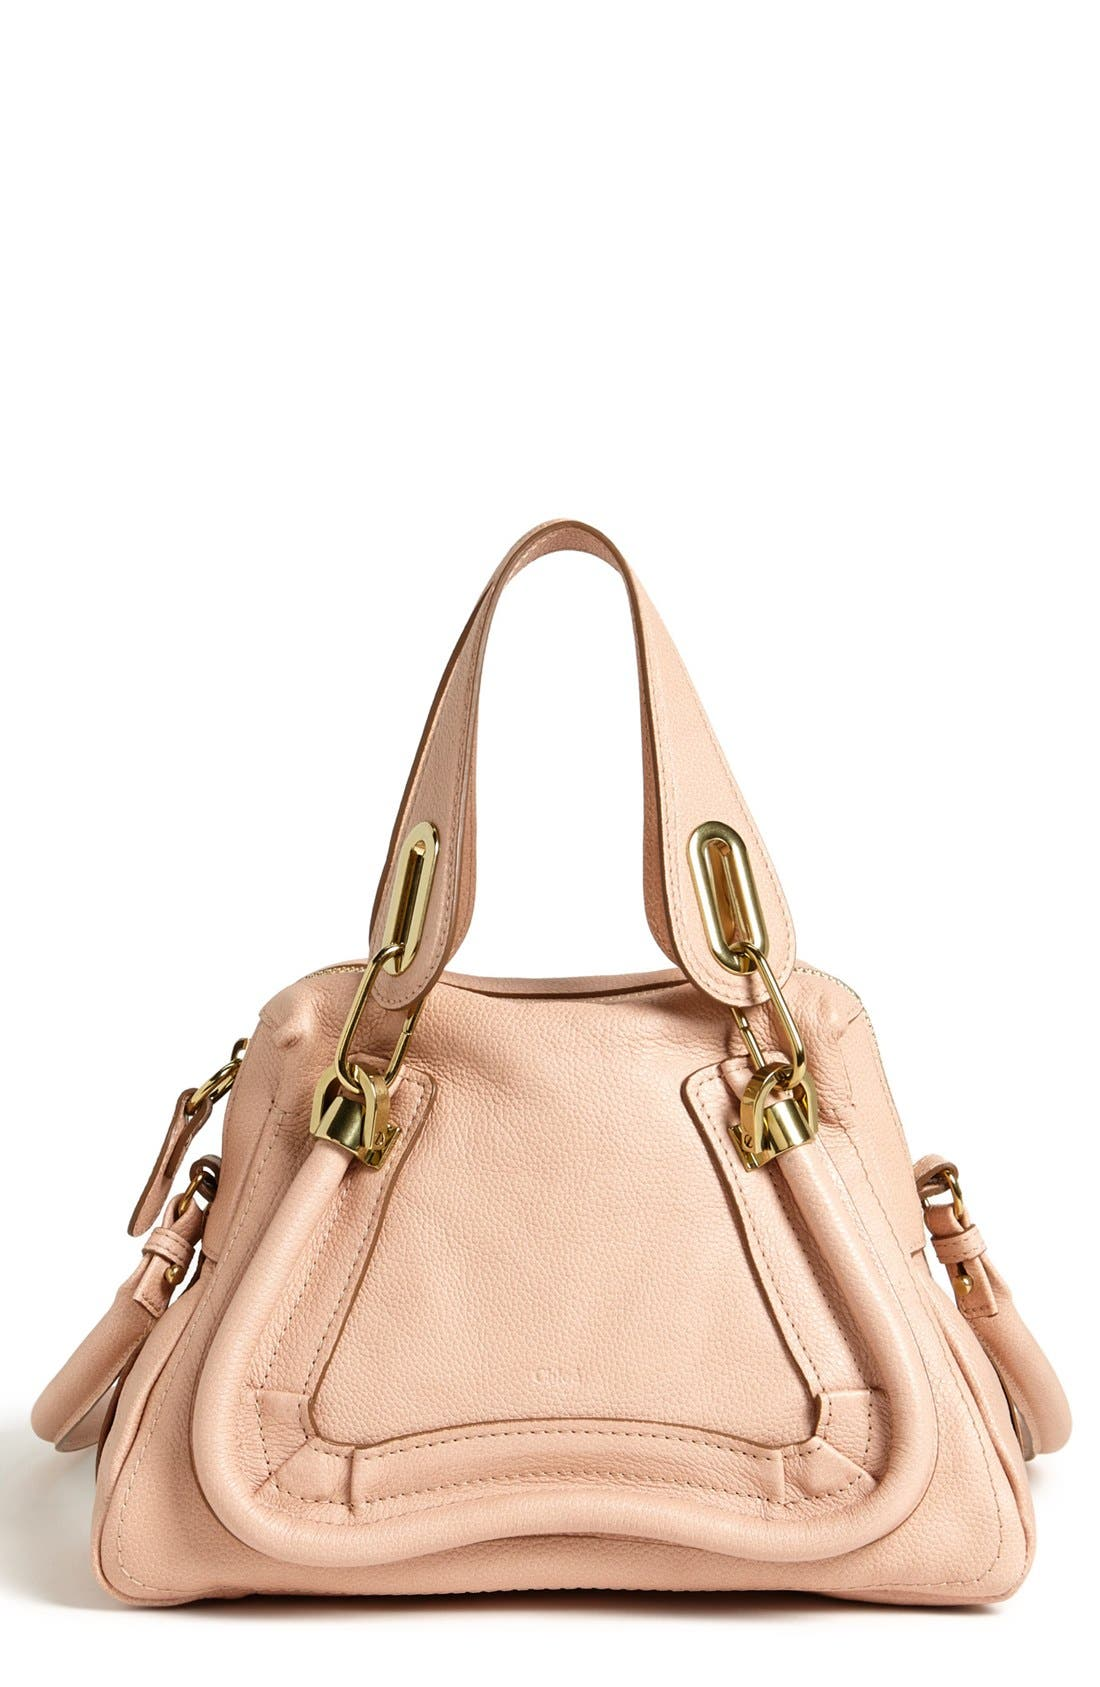 Alternate Image 1 Selected - Chloé 'Paraty - Small' Leather Satchel